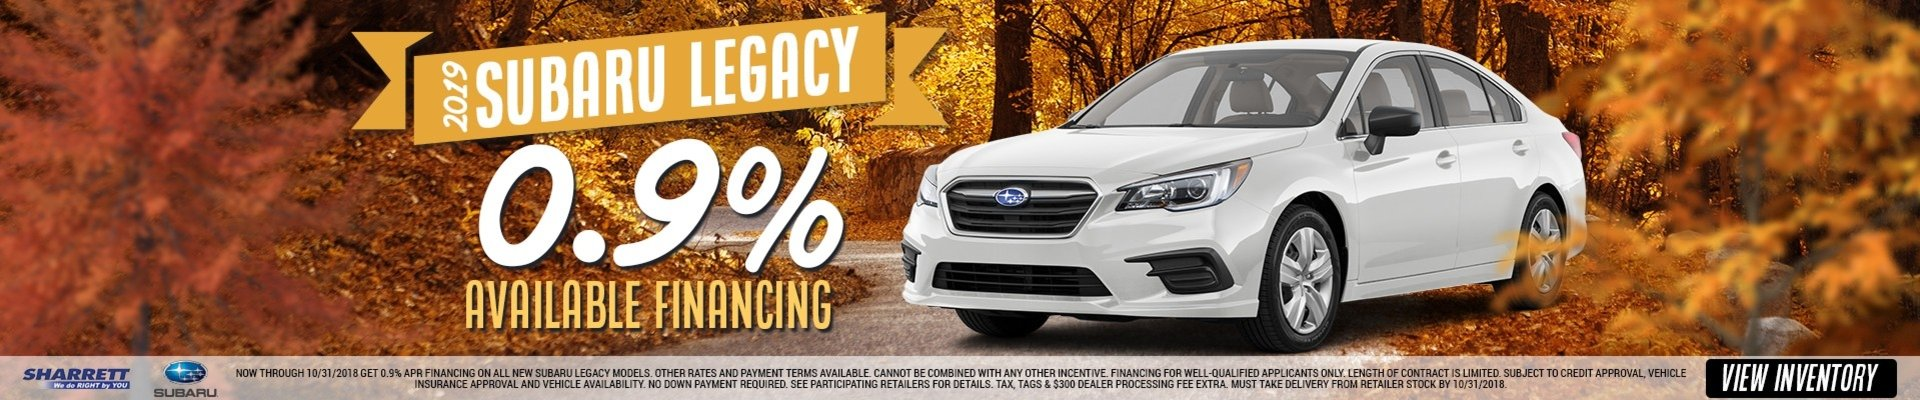 0.9% Available Financing on a 2019 Subaru Legacy